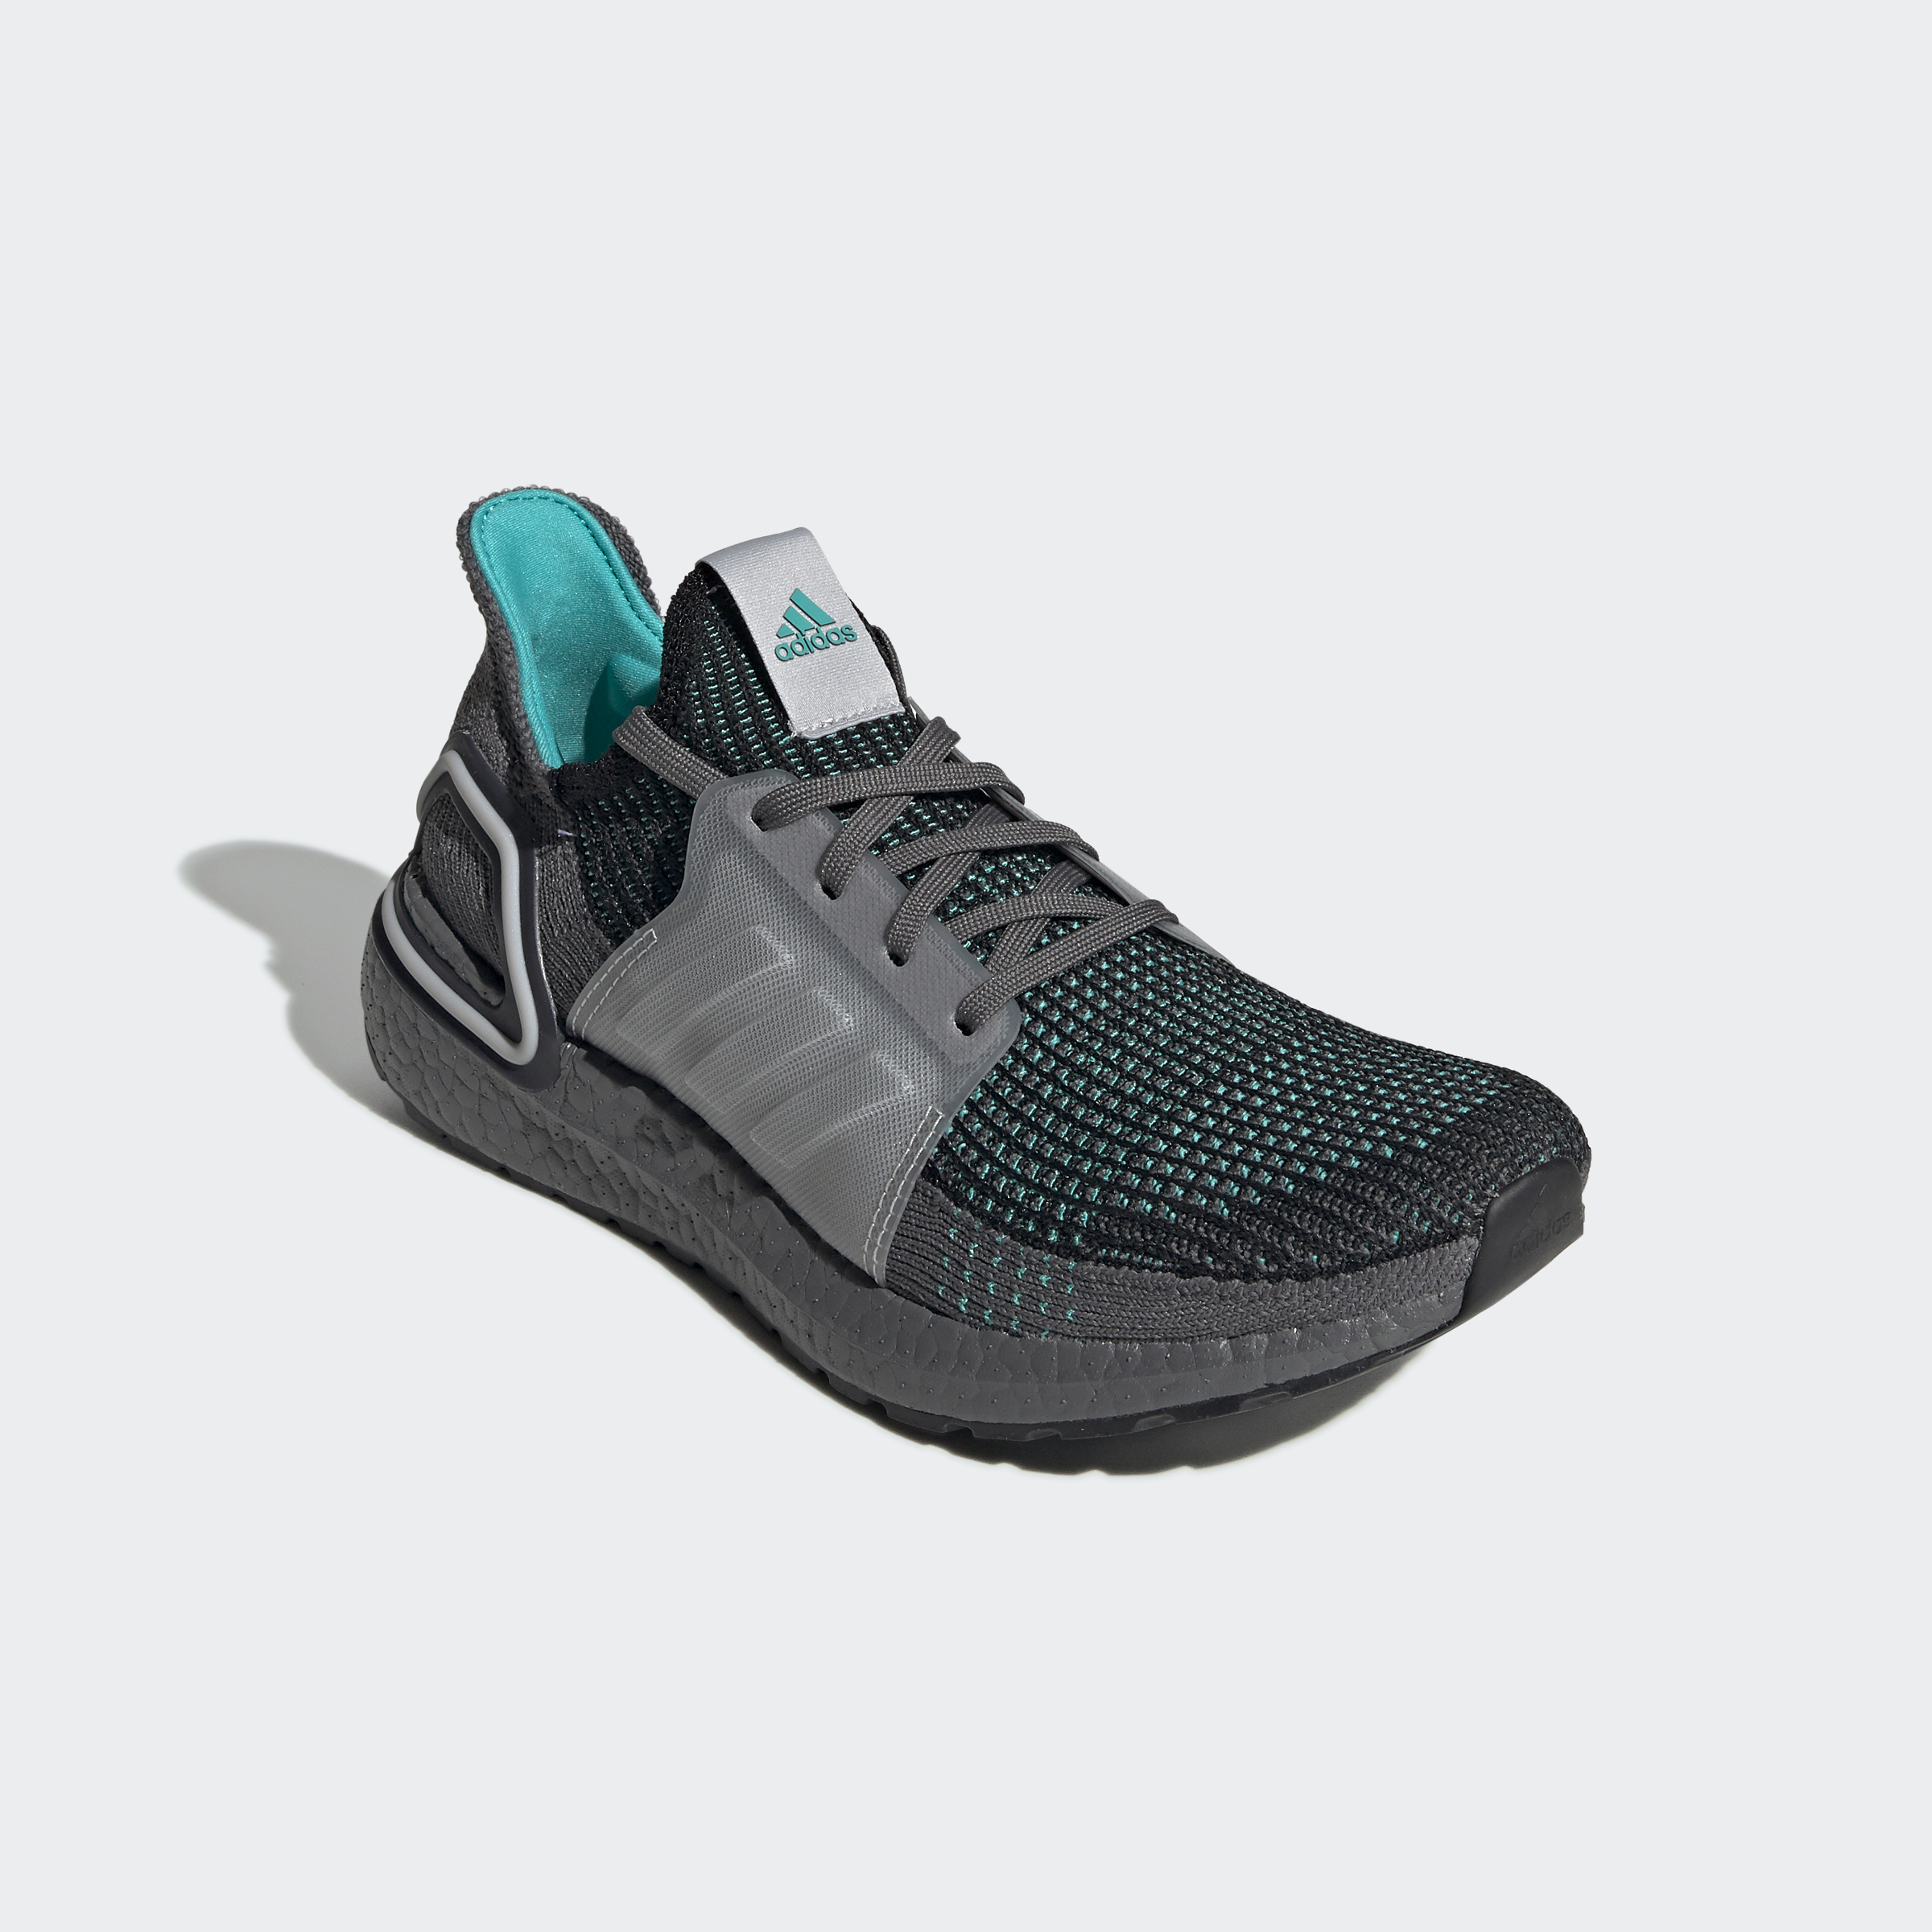 adidas-Ultraboost-19-Shoes-Athletic-amp-Sneakers thumbnail 13